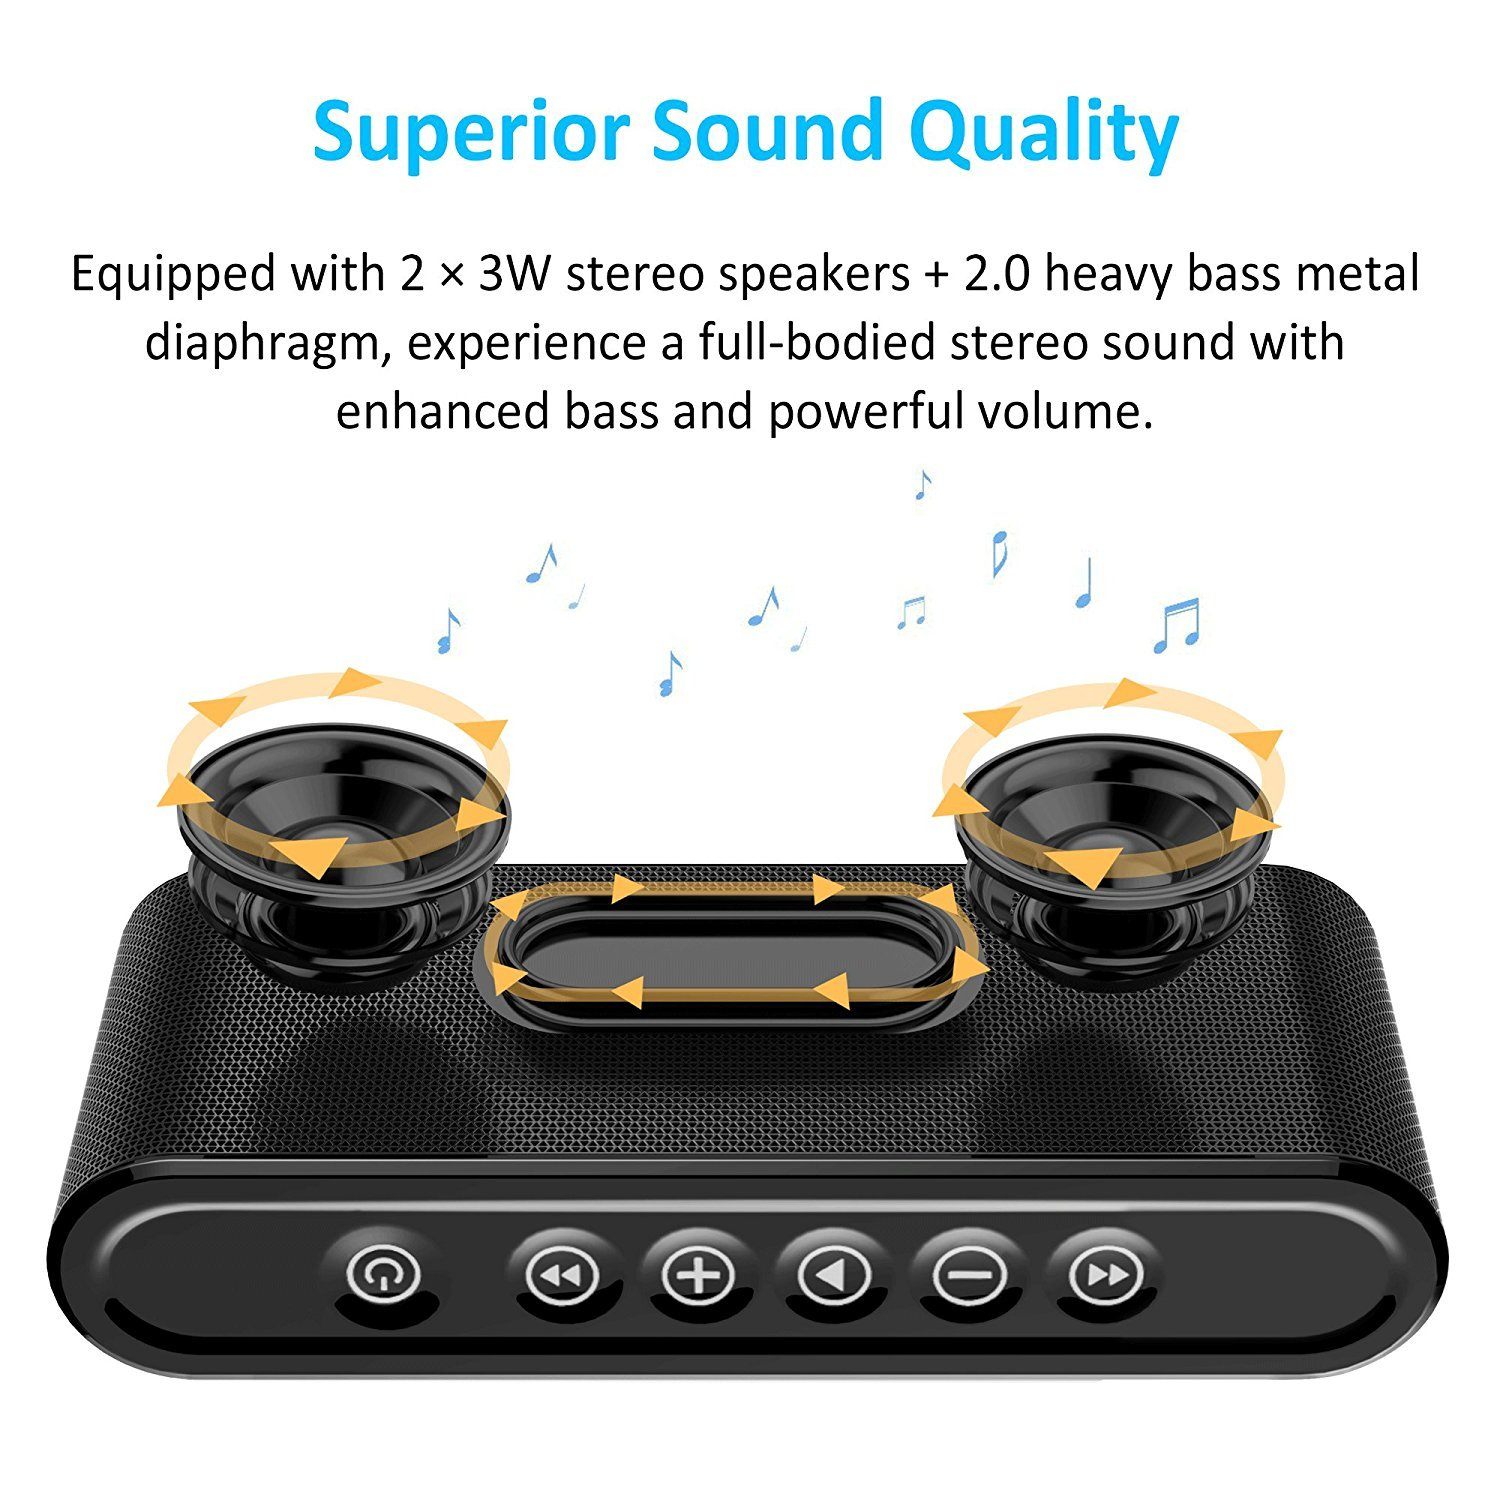 Bluetooth Speakers, 6W Touch Metal Speakers, Mini Portable Bluetooth 4.2 Wireless with Super Bass, Treble Stereo Subwoofer, Support TF Card, USB Disk, 3.5mm AUX Input,Mobile Computer Accessories by WORENMI (Image #3)